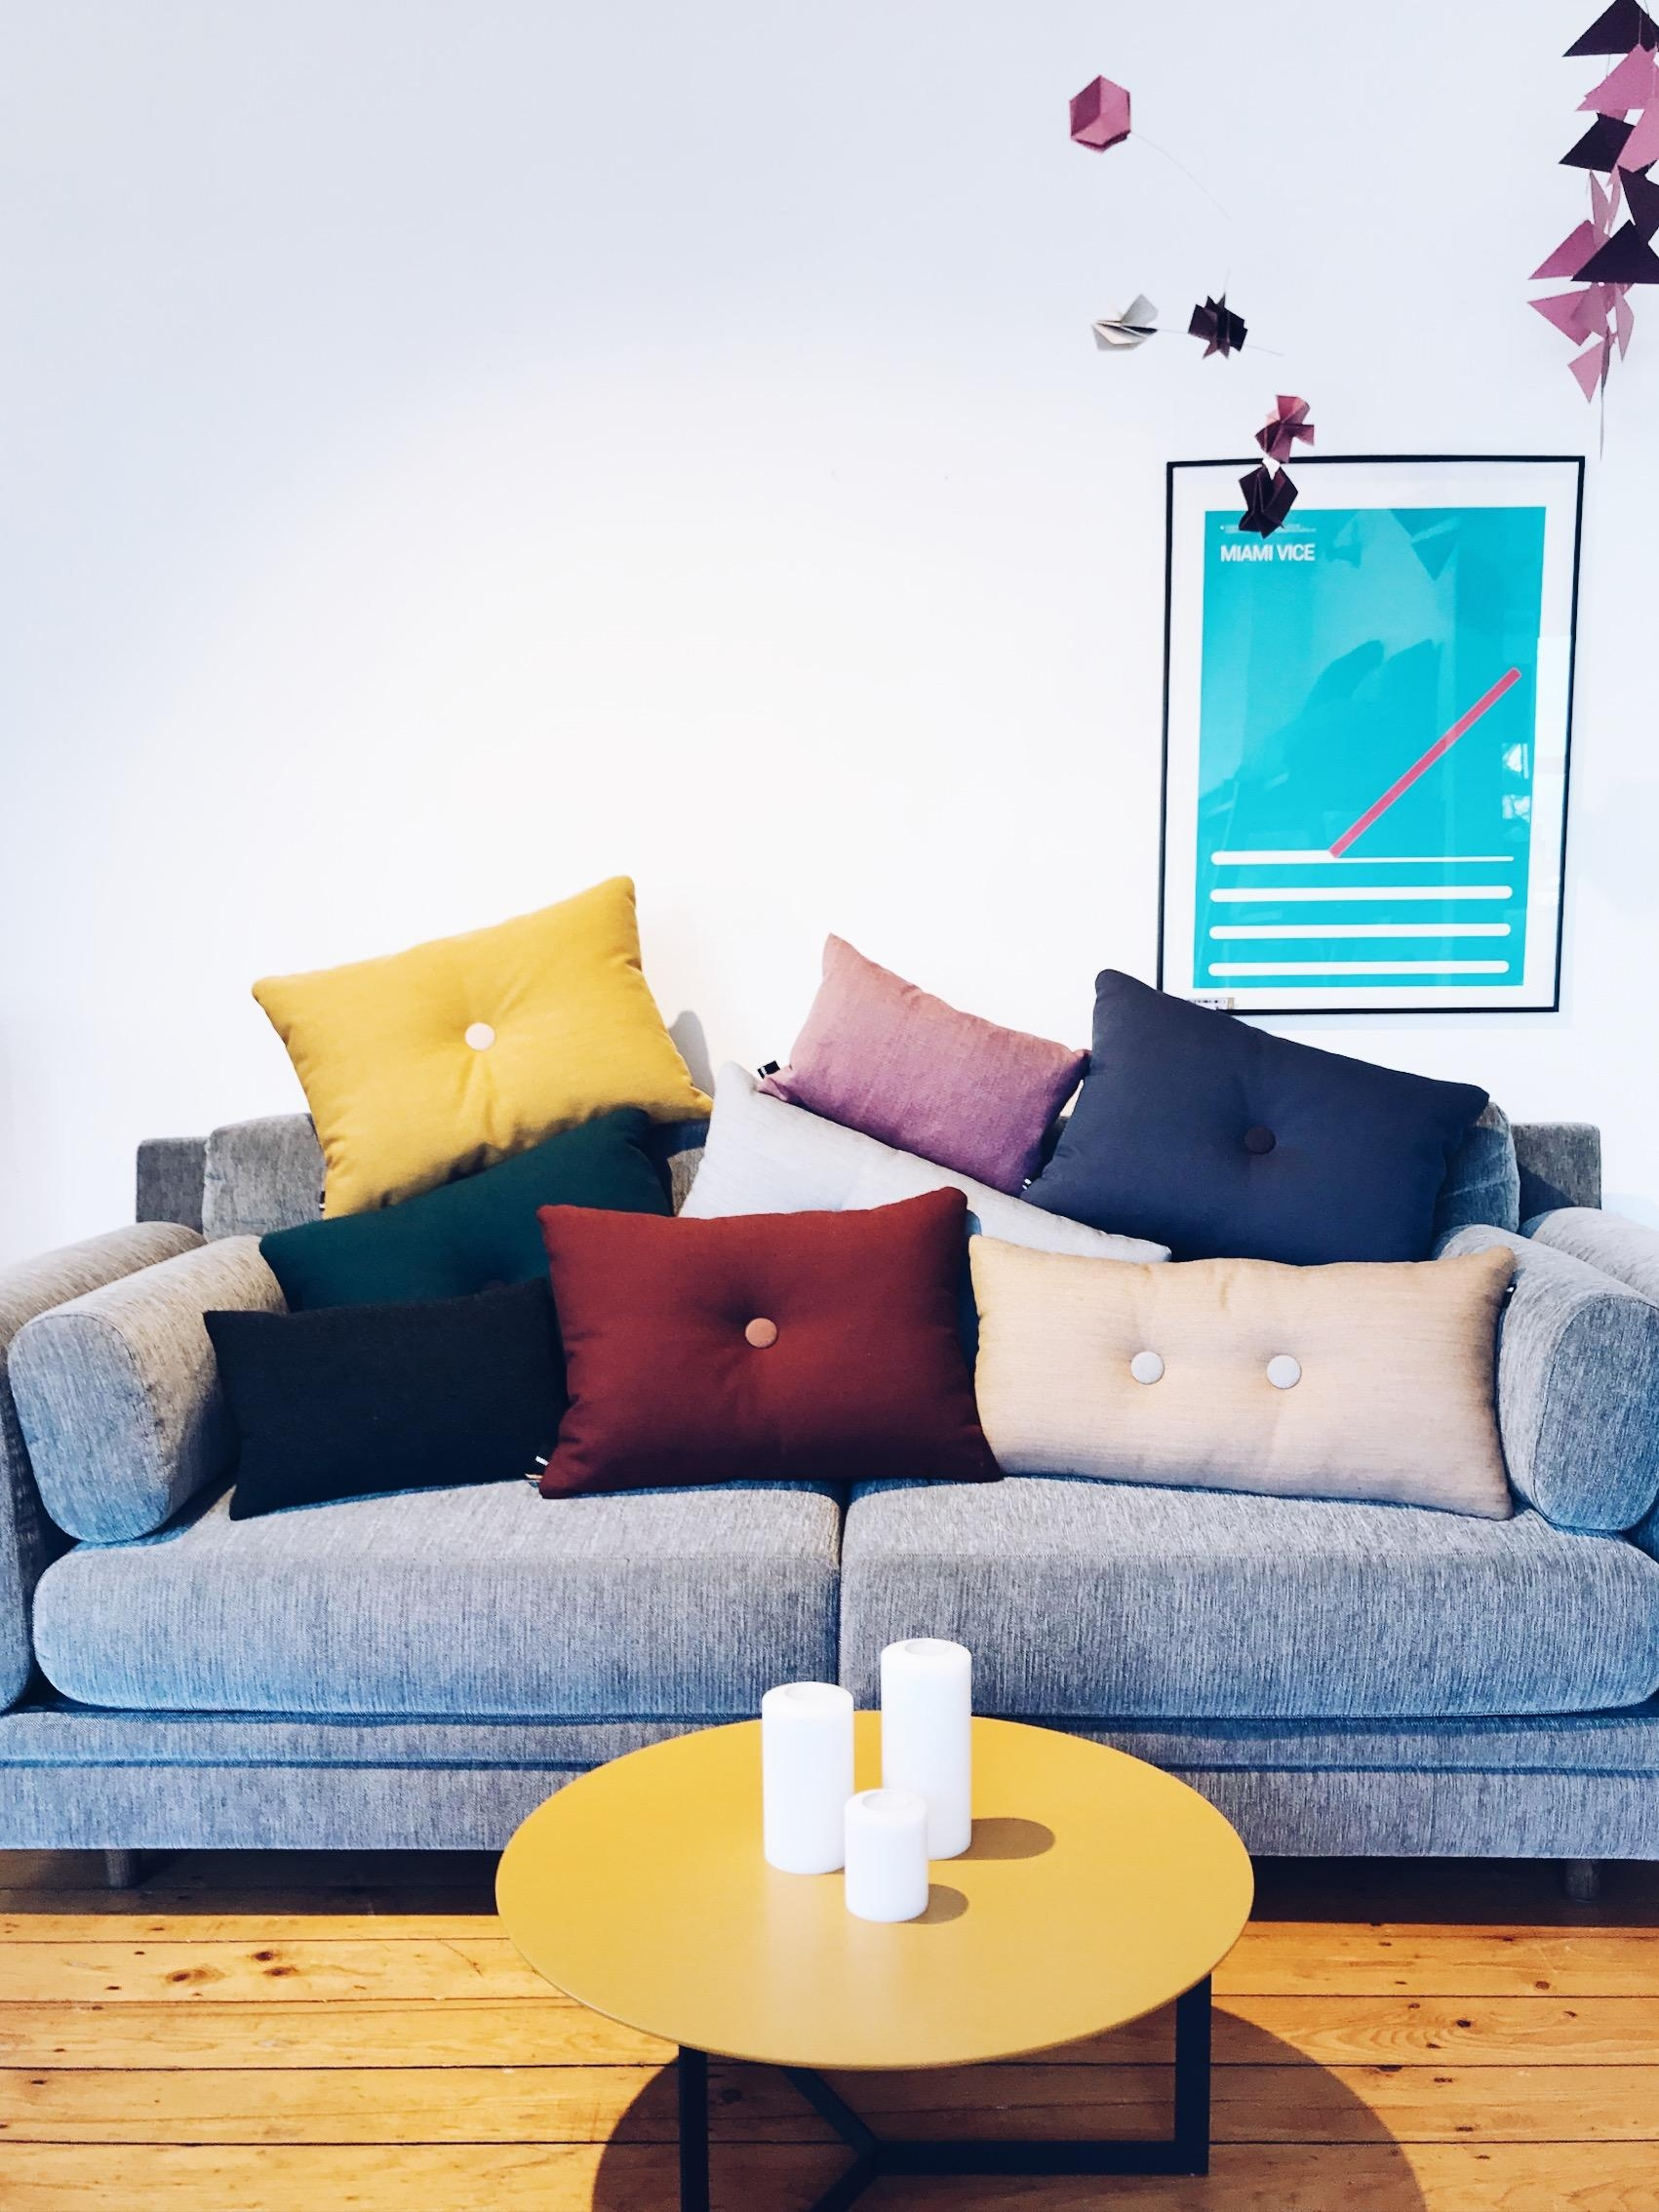 #colourful #haydesign #couchliebt #couchstyle #sofa #interior #cozy #wohnzimmer #living #deko #couch